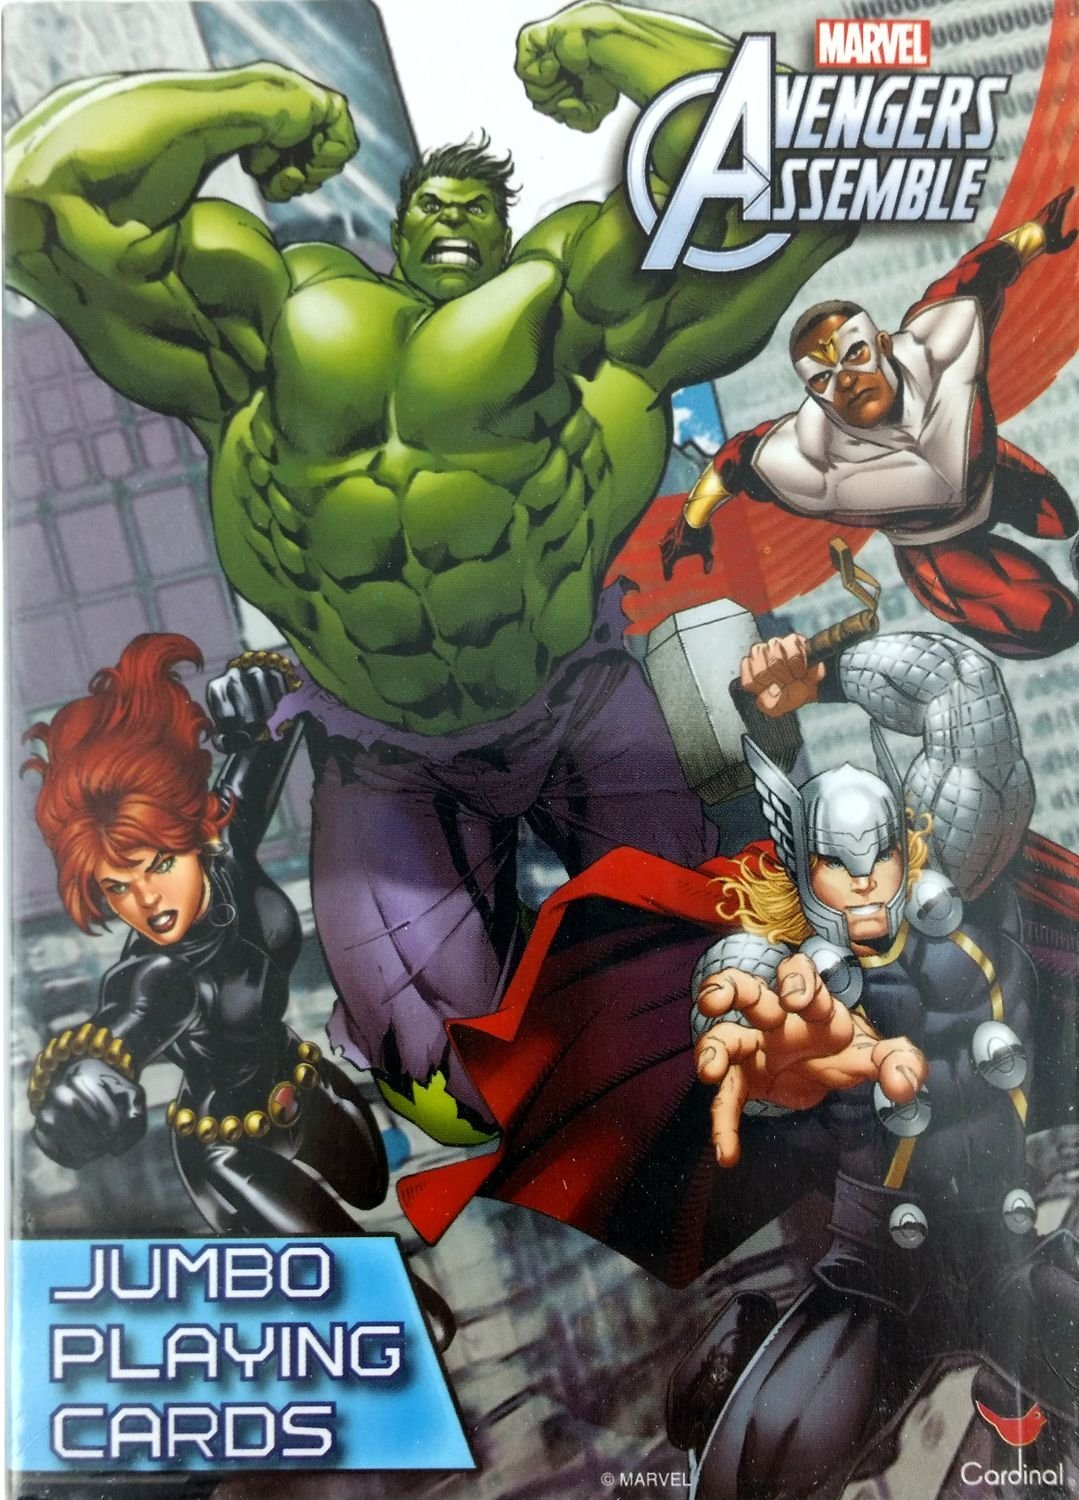 Marvel Comics the Avengers Assemble Jumbo Playing Cards with Instructions for Multiple Games (Crazy 8's, Go Fish, Rummy, Snap and More).